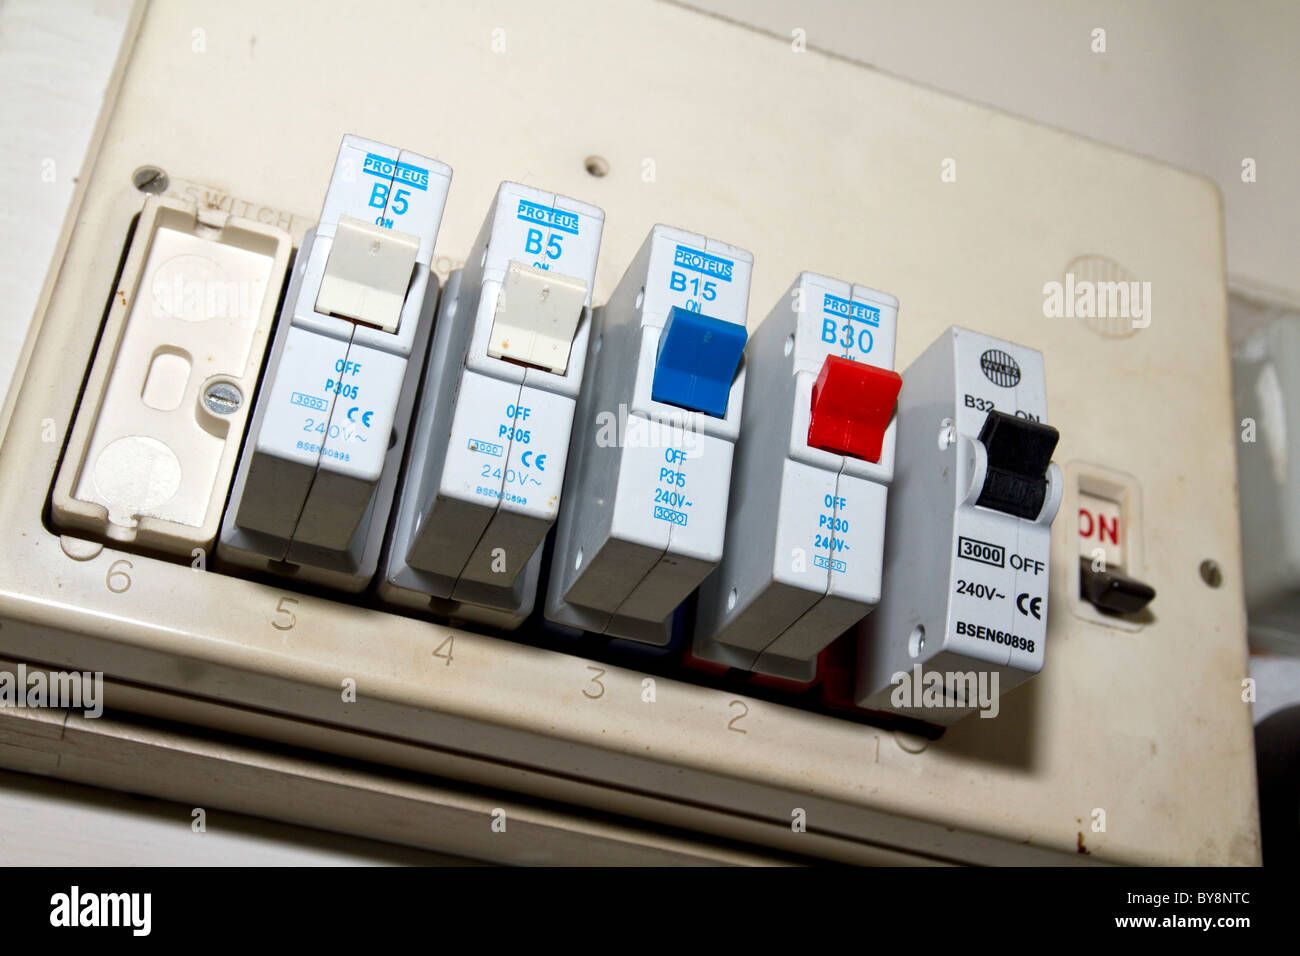 uk old electric fuse box in a london house BY8NTC house fuse box household fuse box wiring diagram \u2022 wiring diagrams economy 7 fuse box at n-0.co